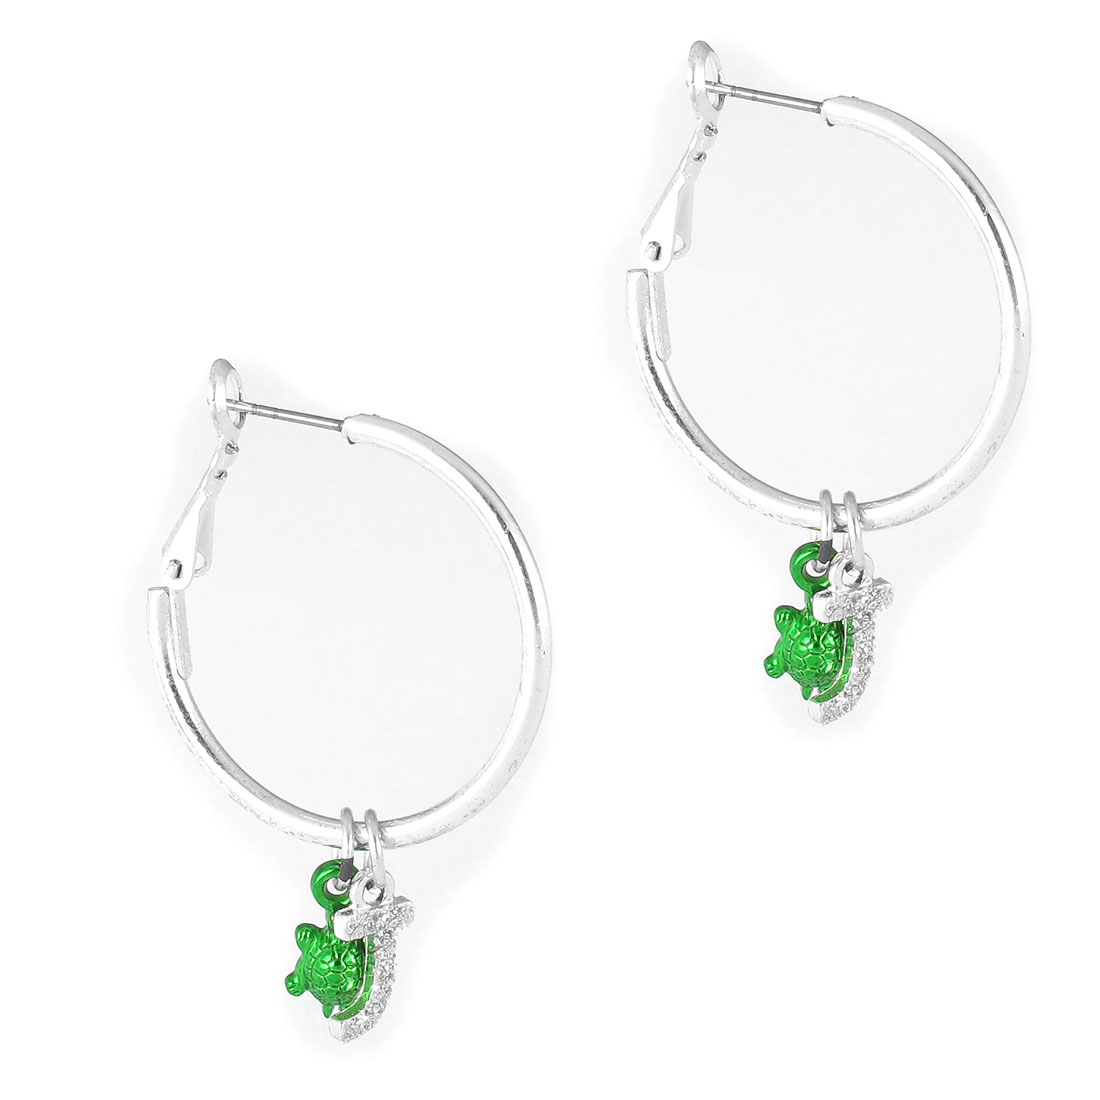 "1.2"" Dia Silver Tone Green Metal Narrow Edge Smooth Circle Running Letter Tortoise Design Hoop Pierced Earrings Pair for Lady Women"